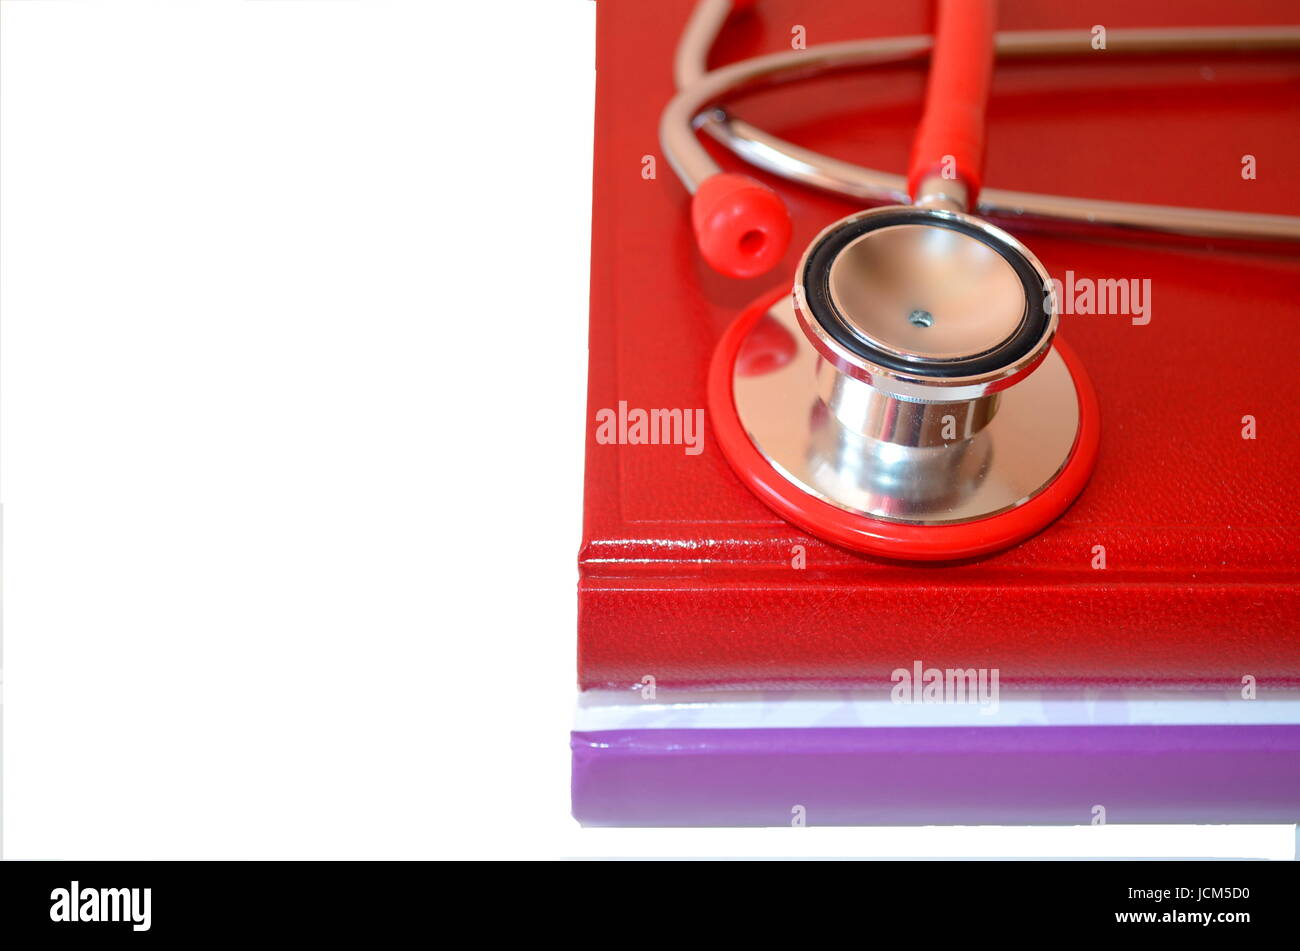 Medical student life: books and stethoscope - Stock Image